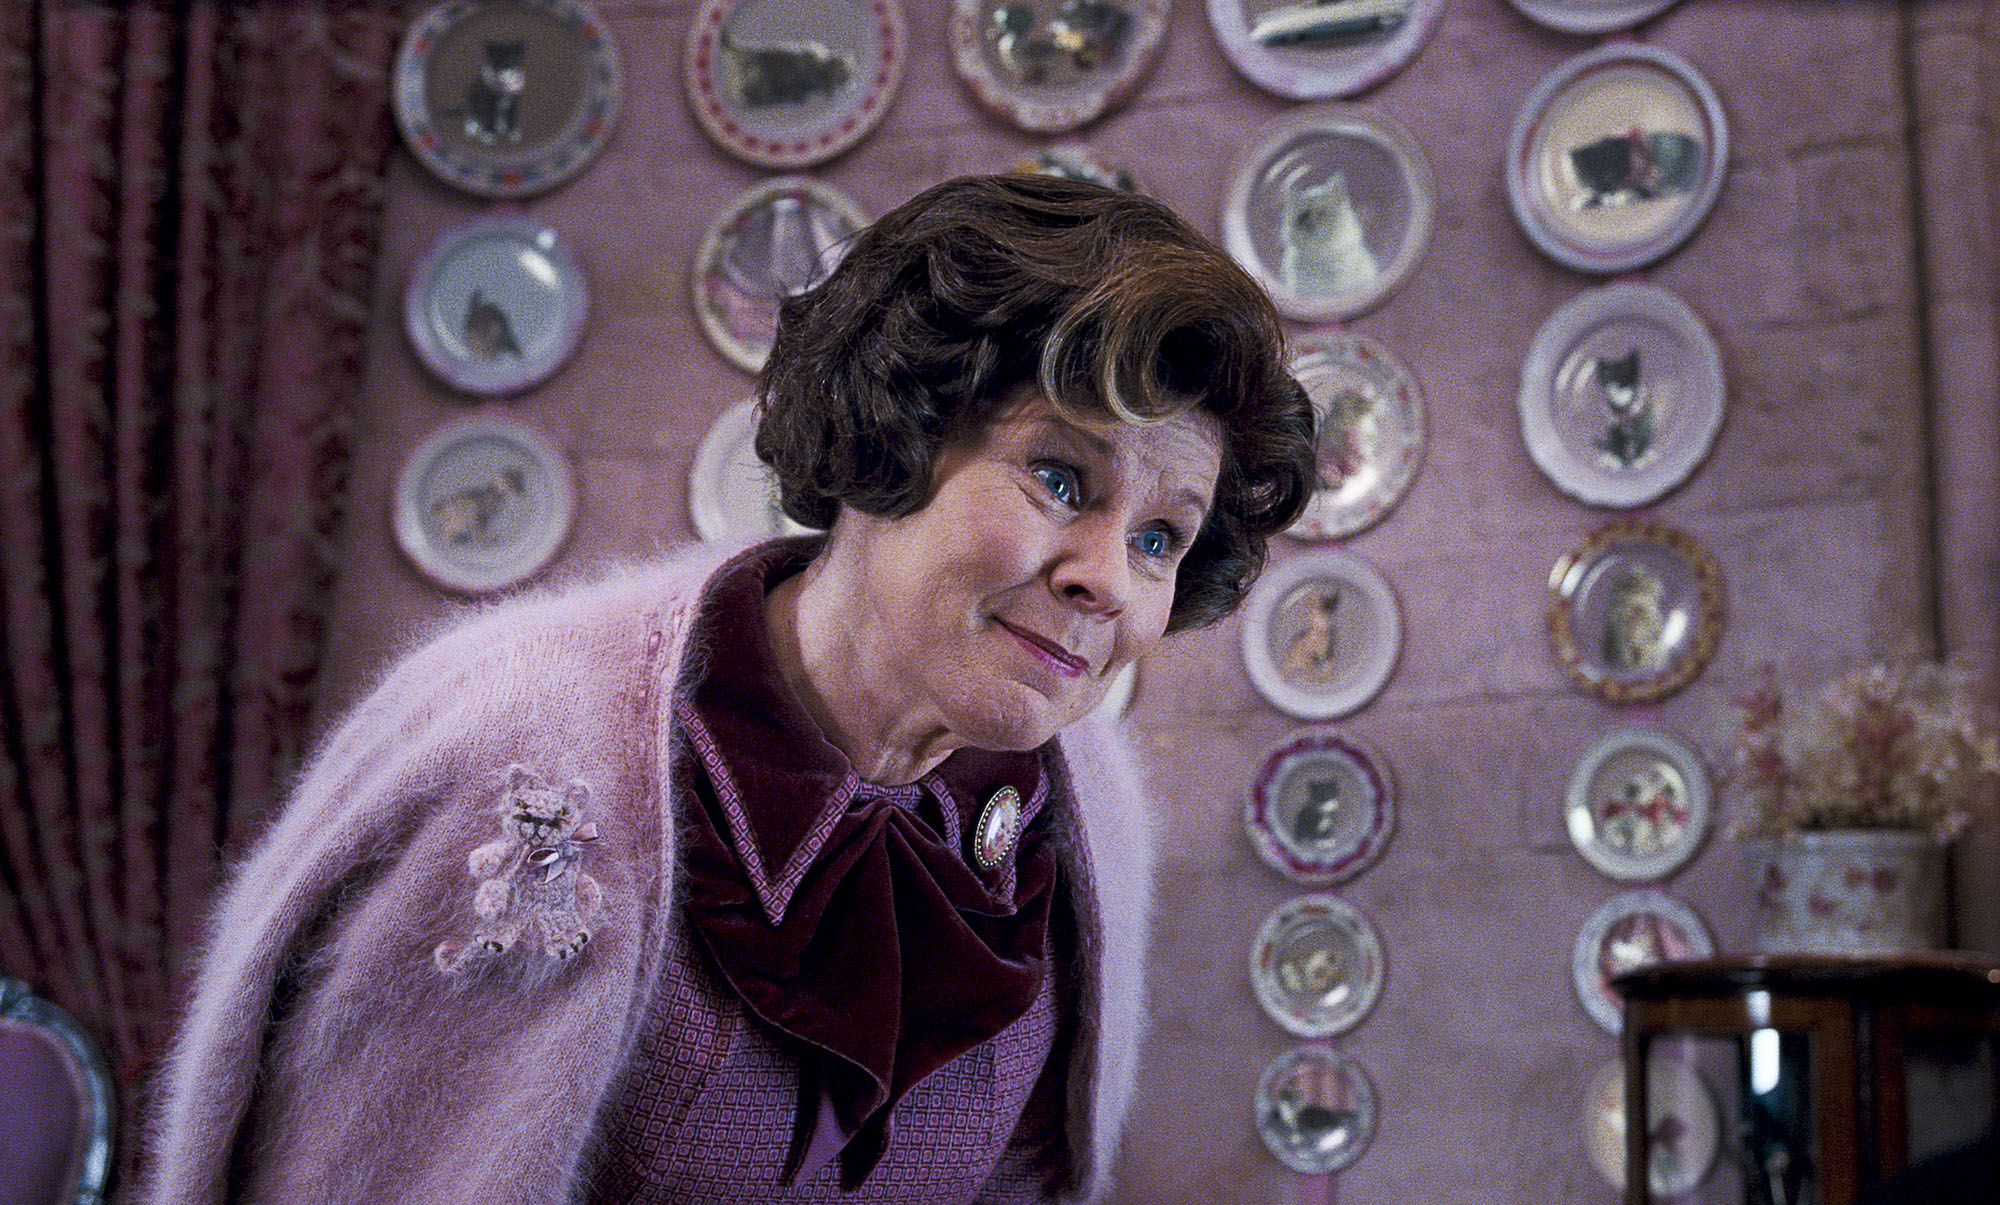 WB HP F5 Dolores Umbridge in Order of the Phoenix